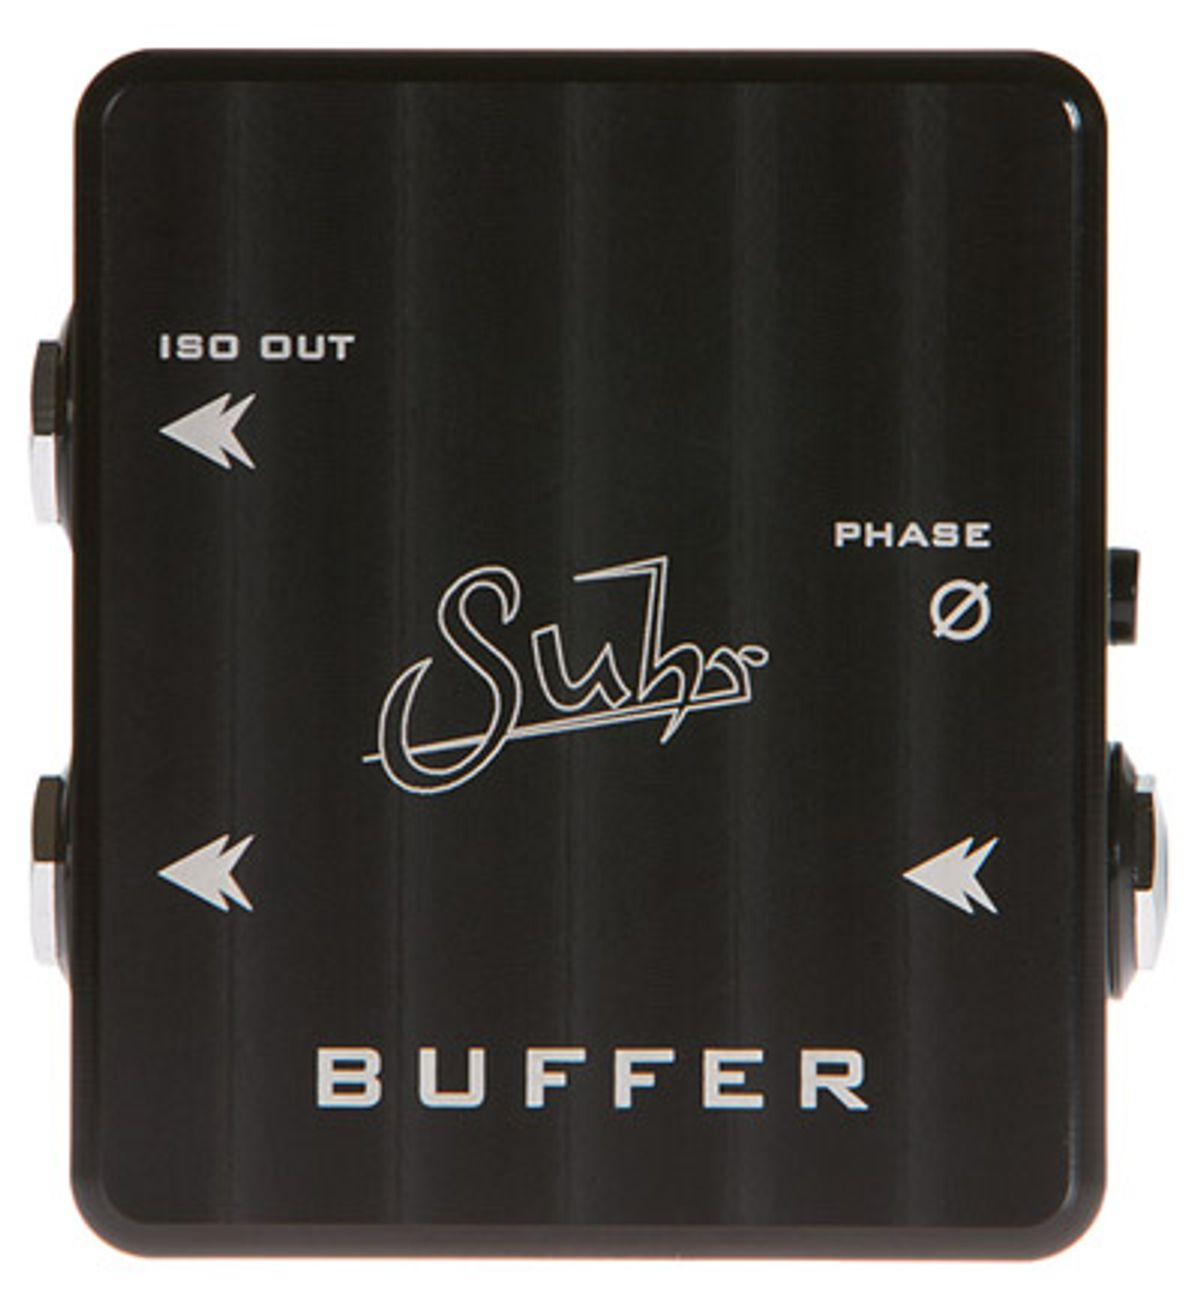 Suhr Introduces the Buffer Pedal